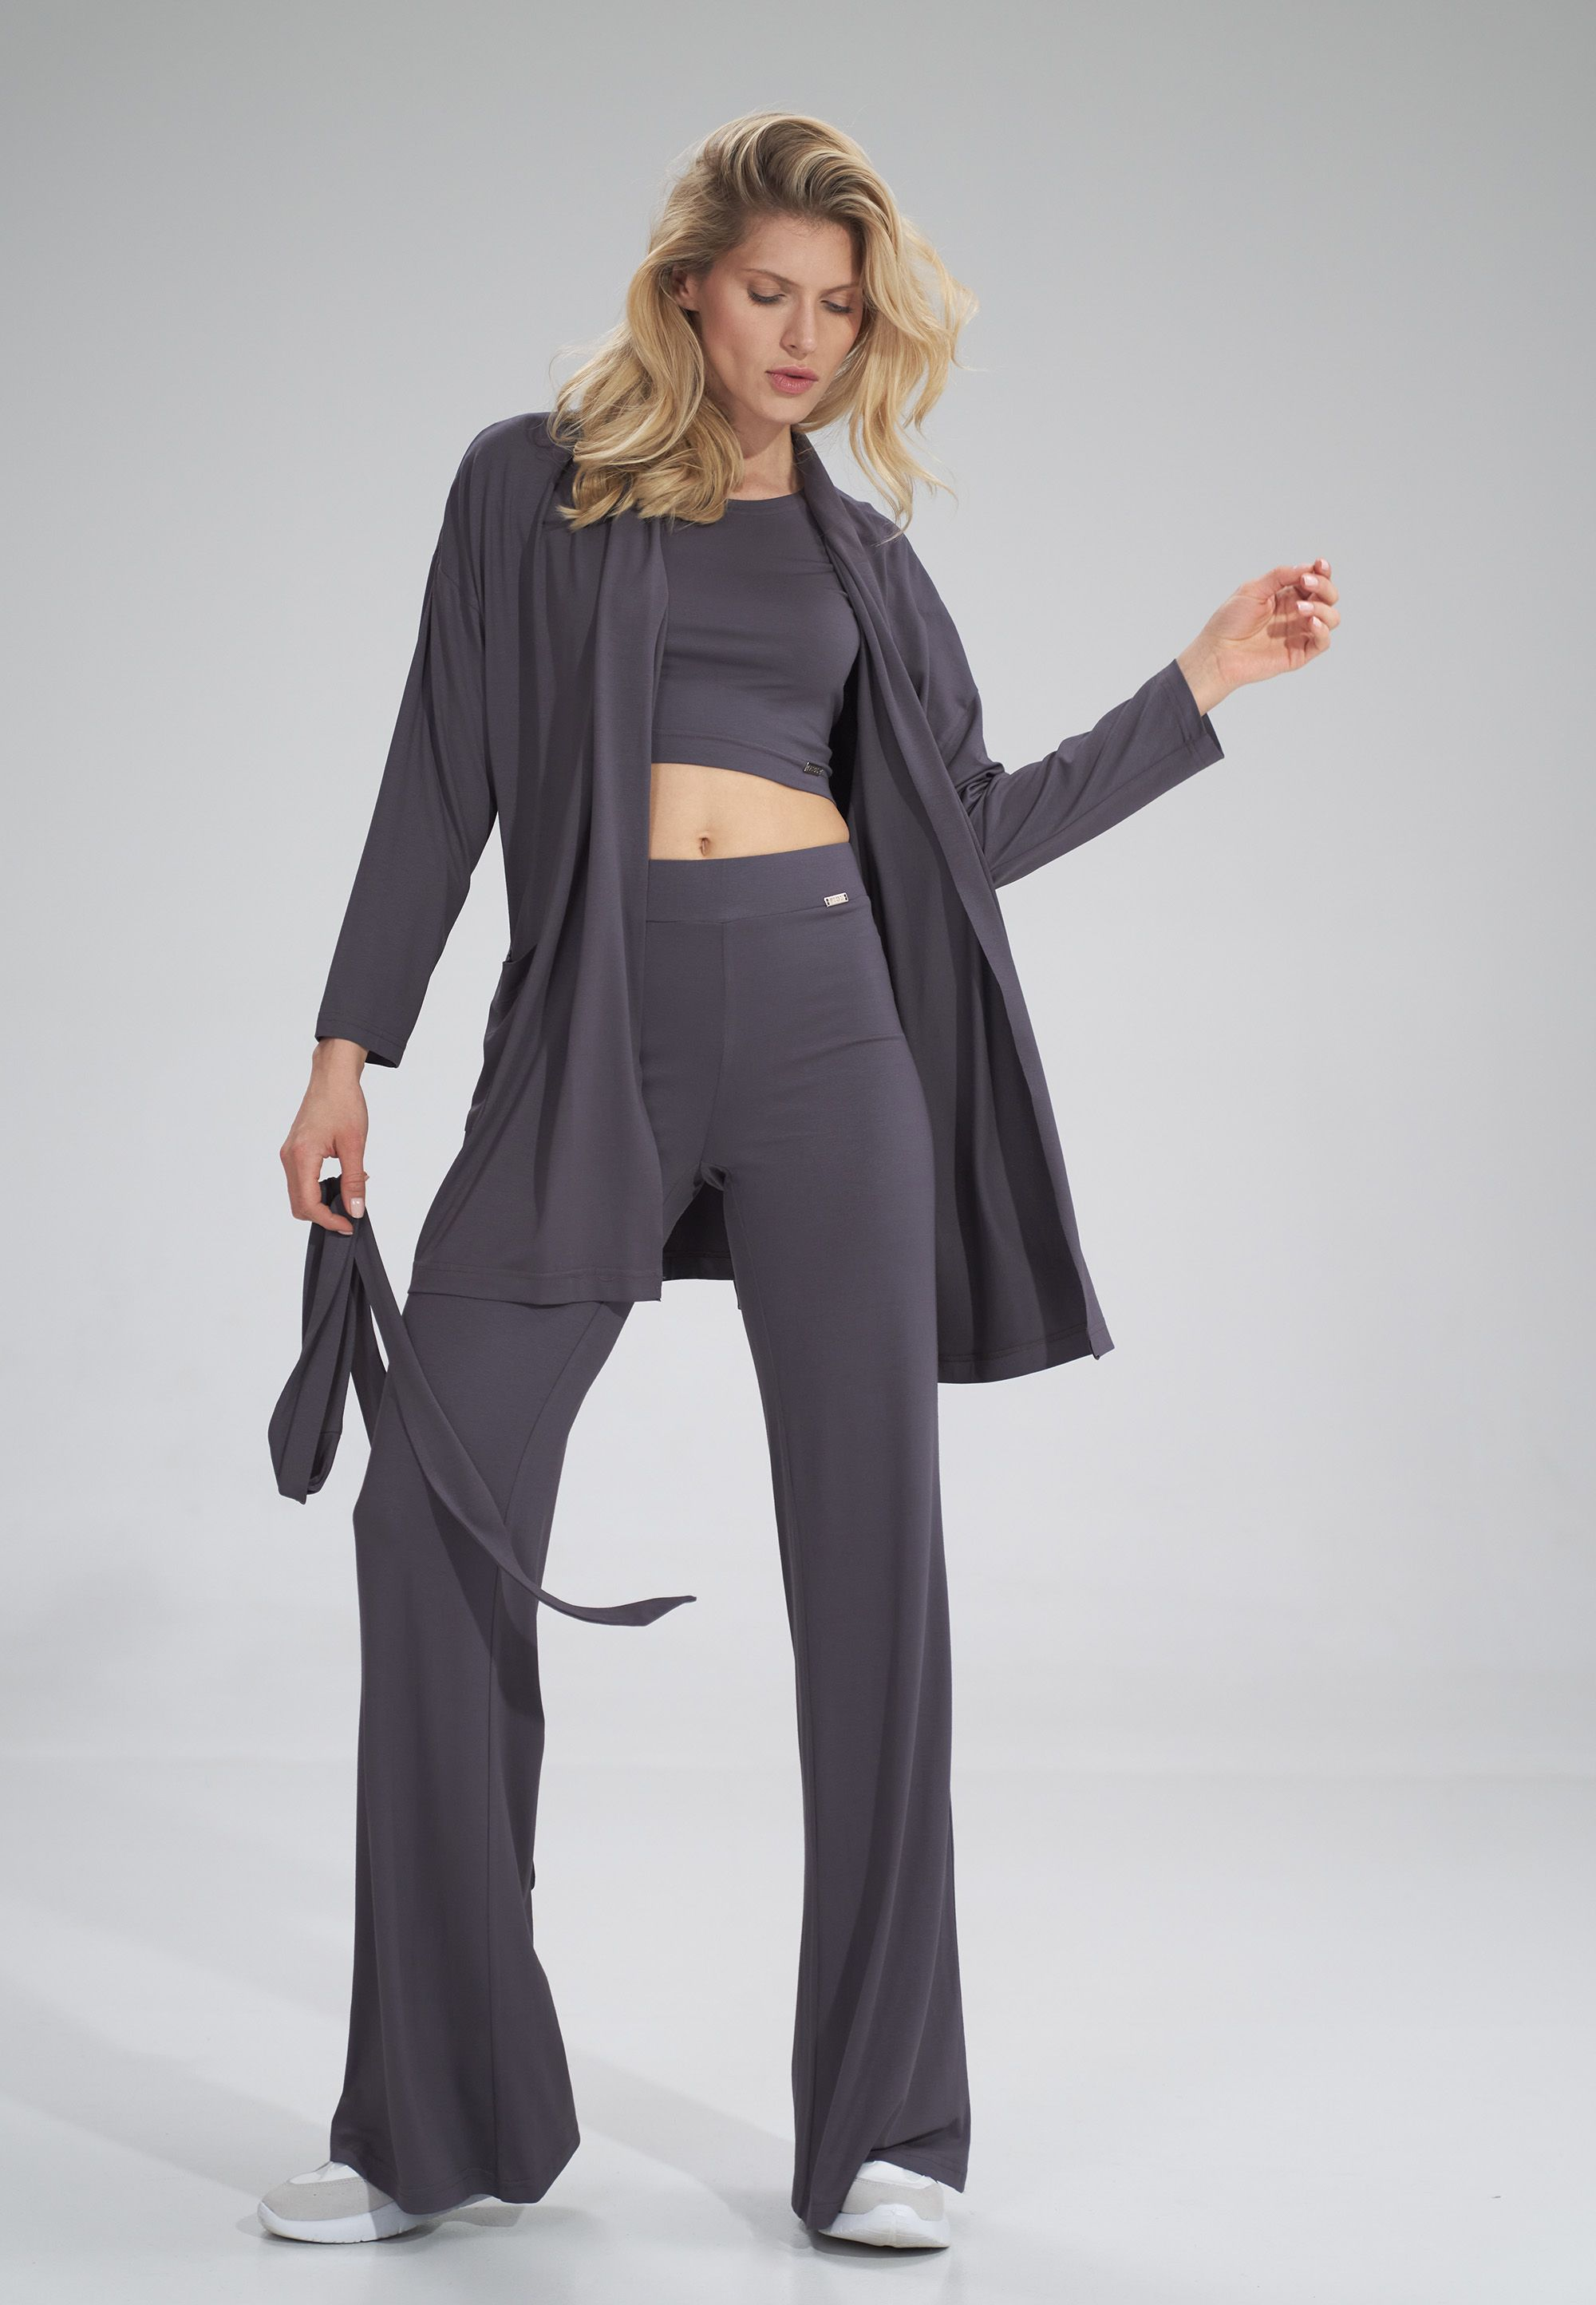 Cardigan with a belt